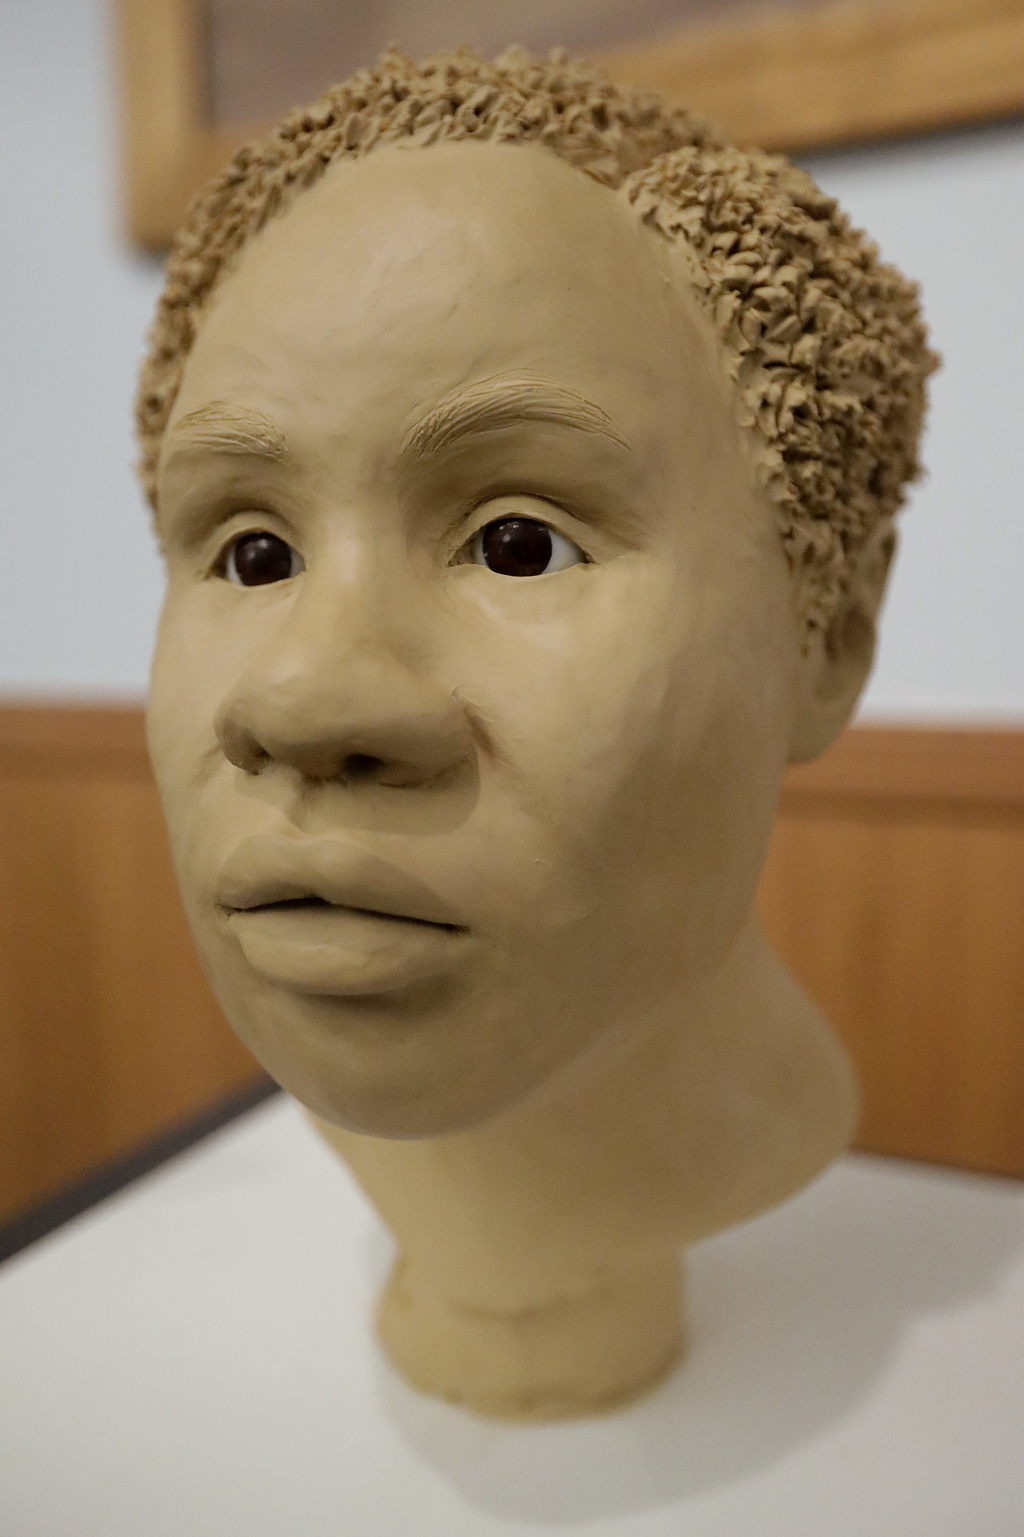 This Oct. 21, 2016 photo shows a forensic sculpture of an unidentified 1985 female murder victim during a forensic conference in Tampa,...